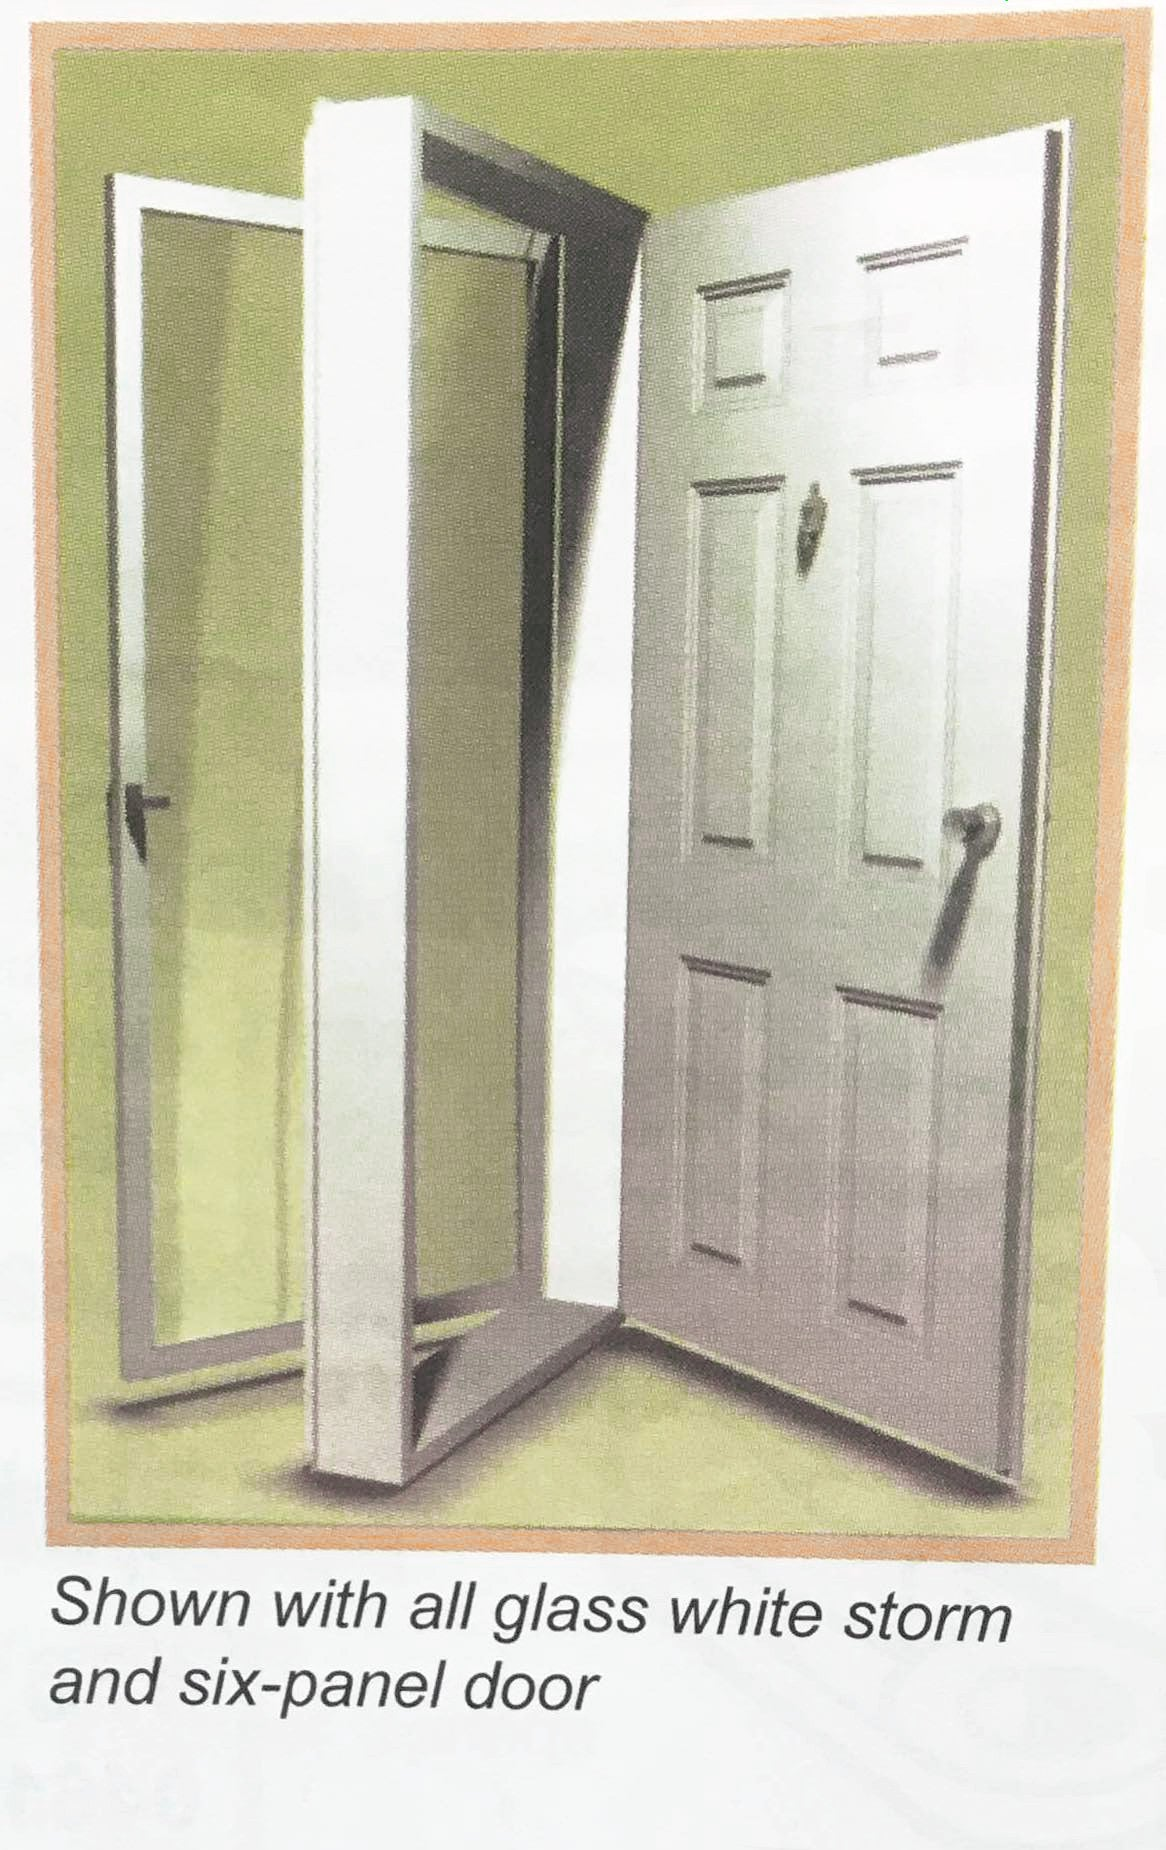 Elixir Industries Series 9000 Vinyl Steel Combination Door